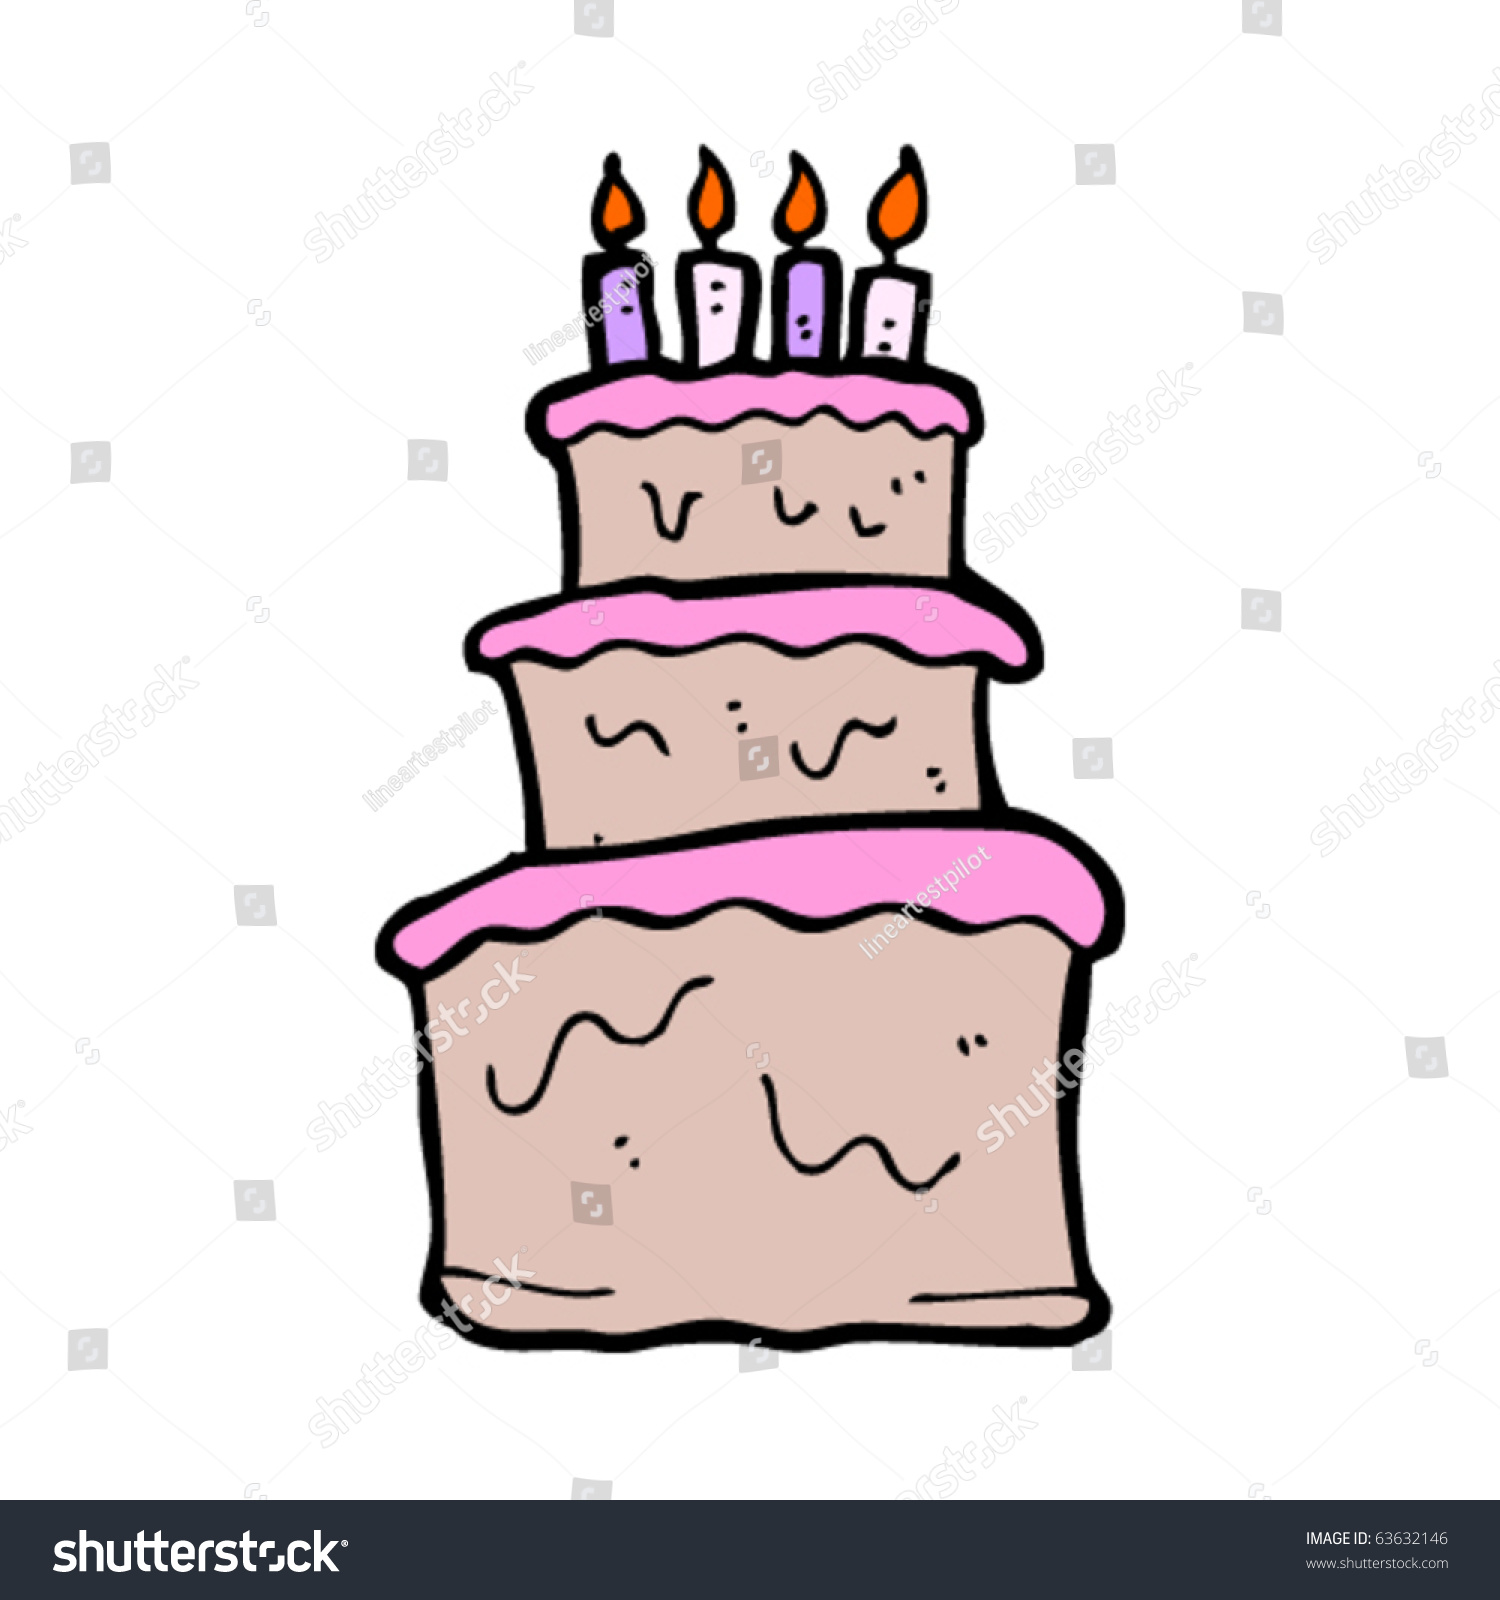 Huge Birthday Cake Cartoon Stock Photo Photo Vector Illustration